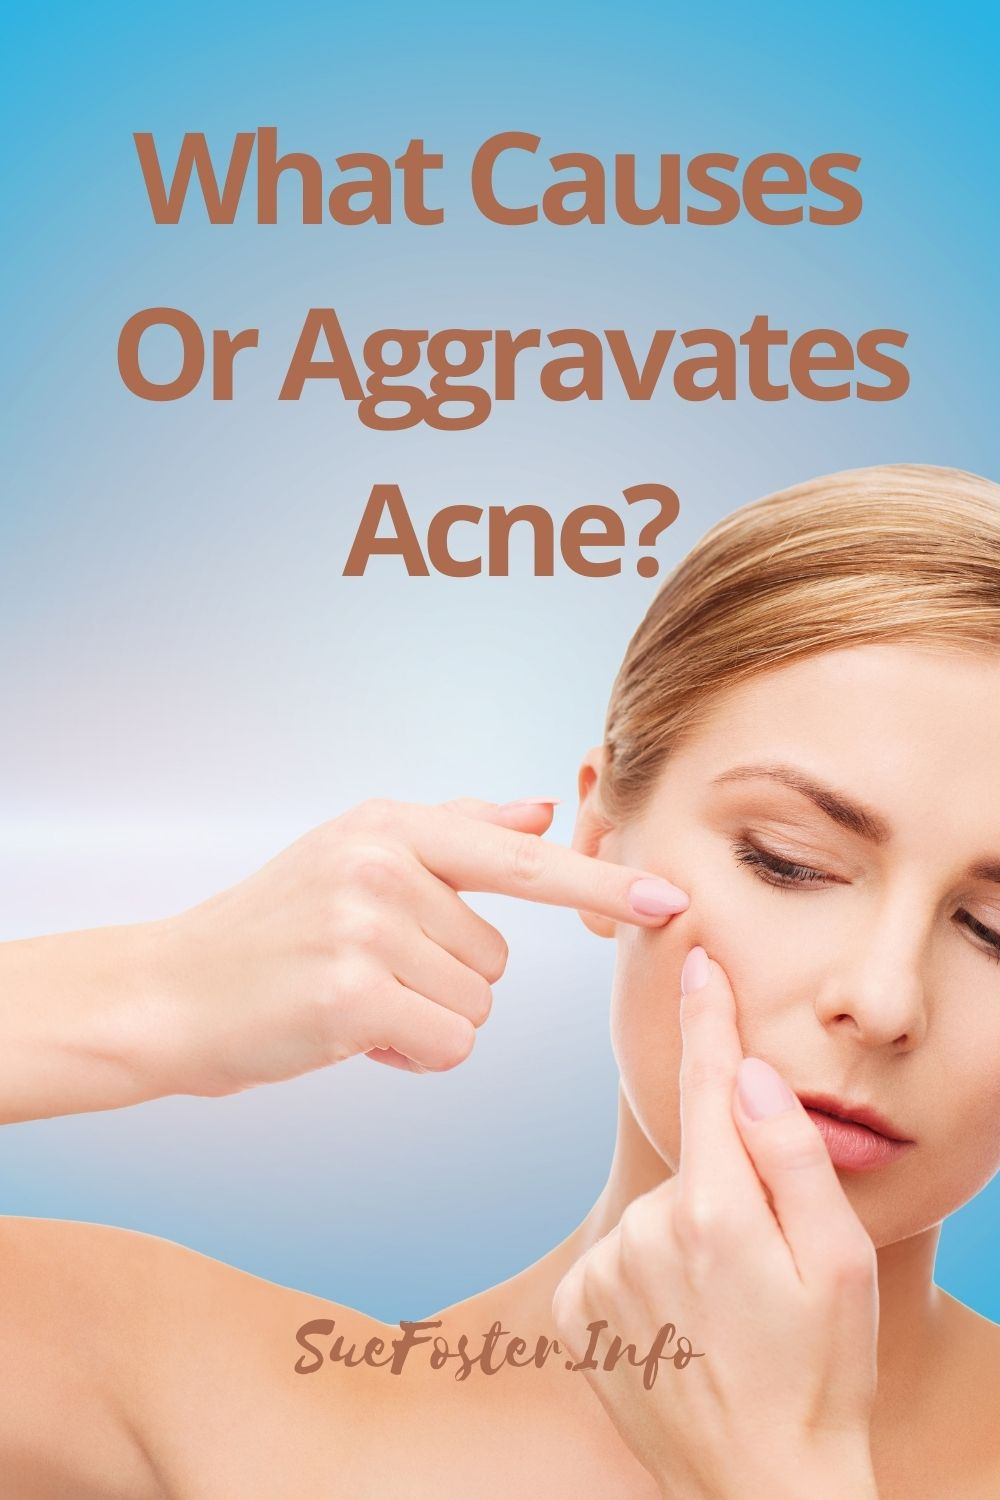 Acne is a horrible condition to live with and there are various factors that contribute to acne development. Read on to find out what can cause or aggravate acne.